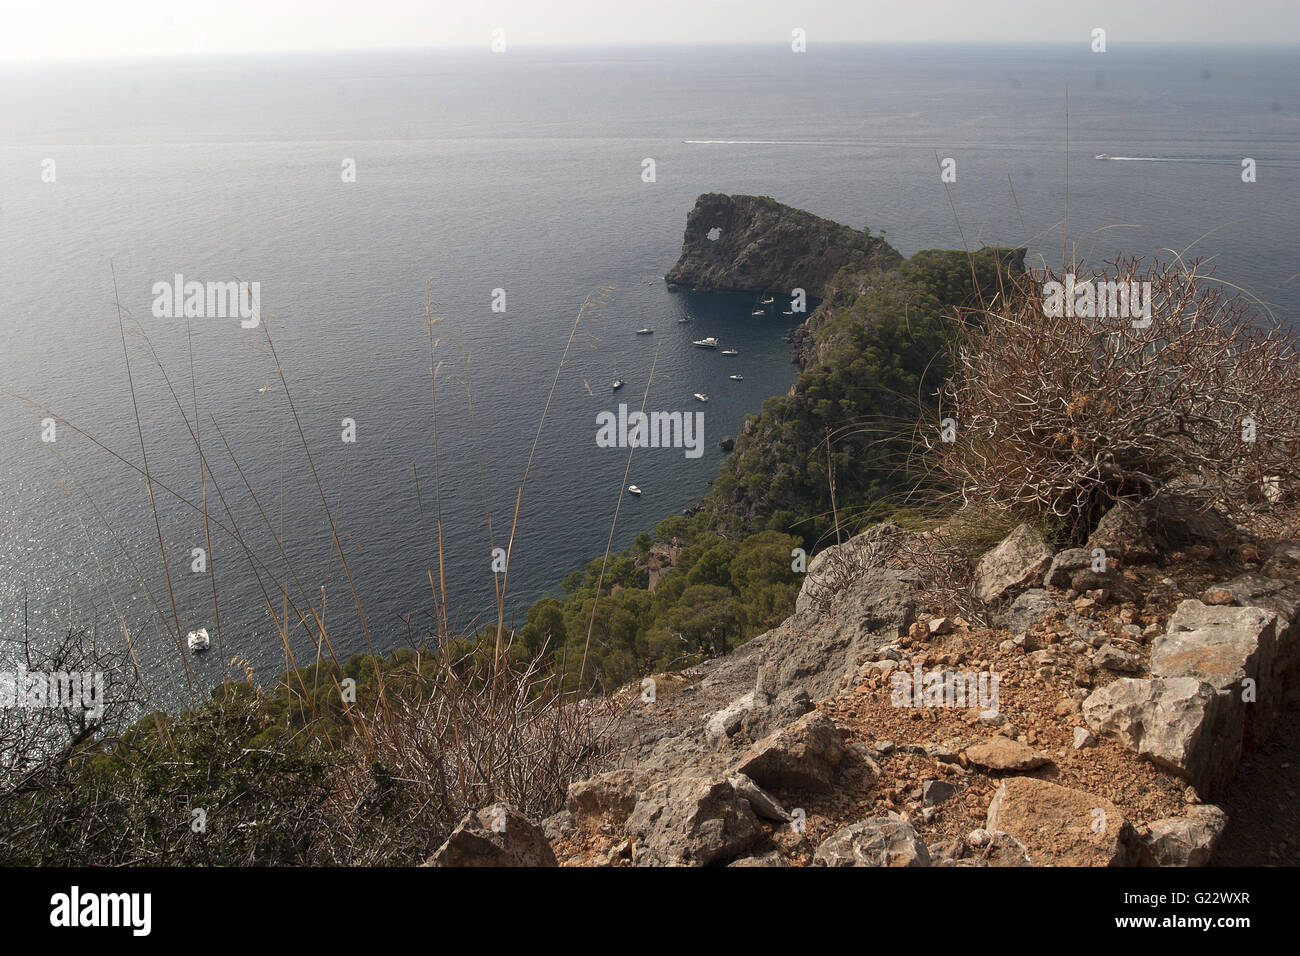 a beautiful picture of the coasts blue sea with rocks and vegetation in the foreground in Palma de Mallorca, Spain, - Stock Image